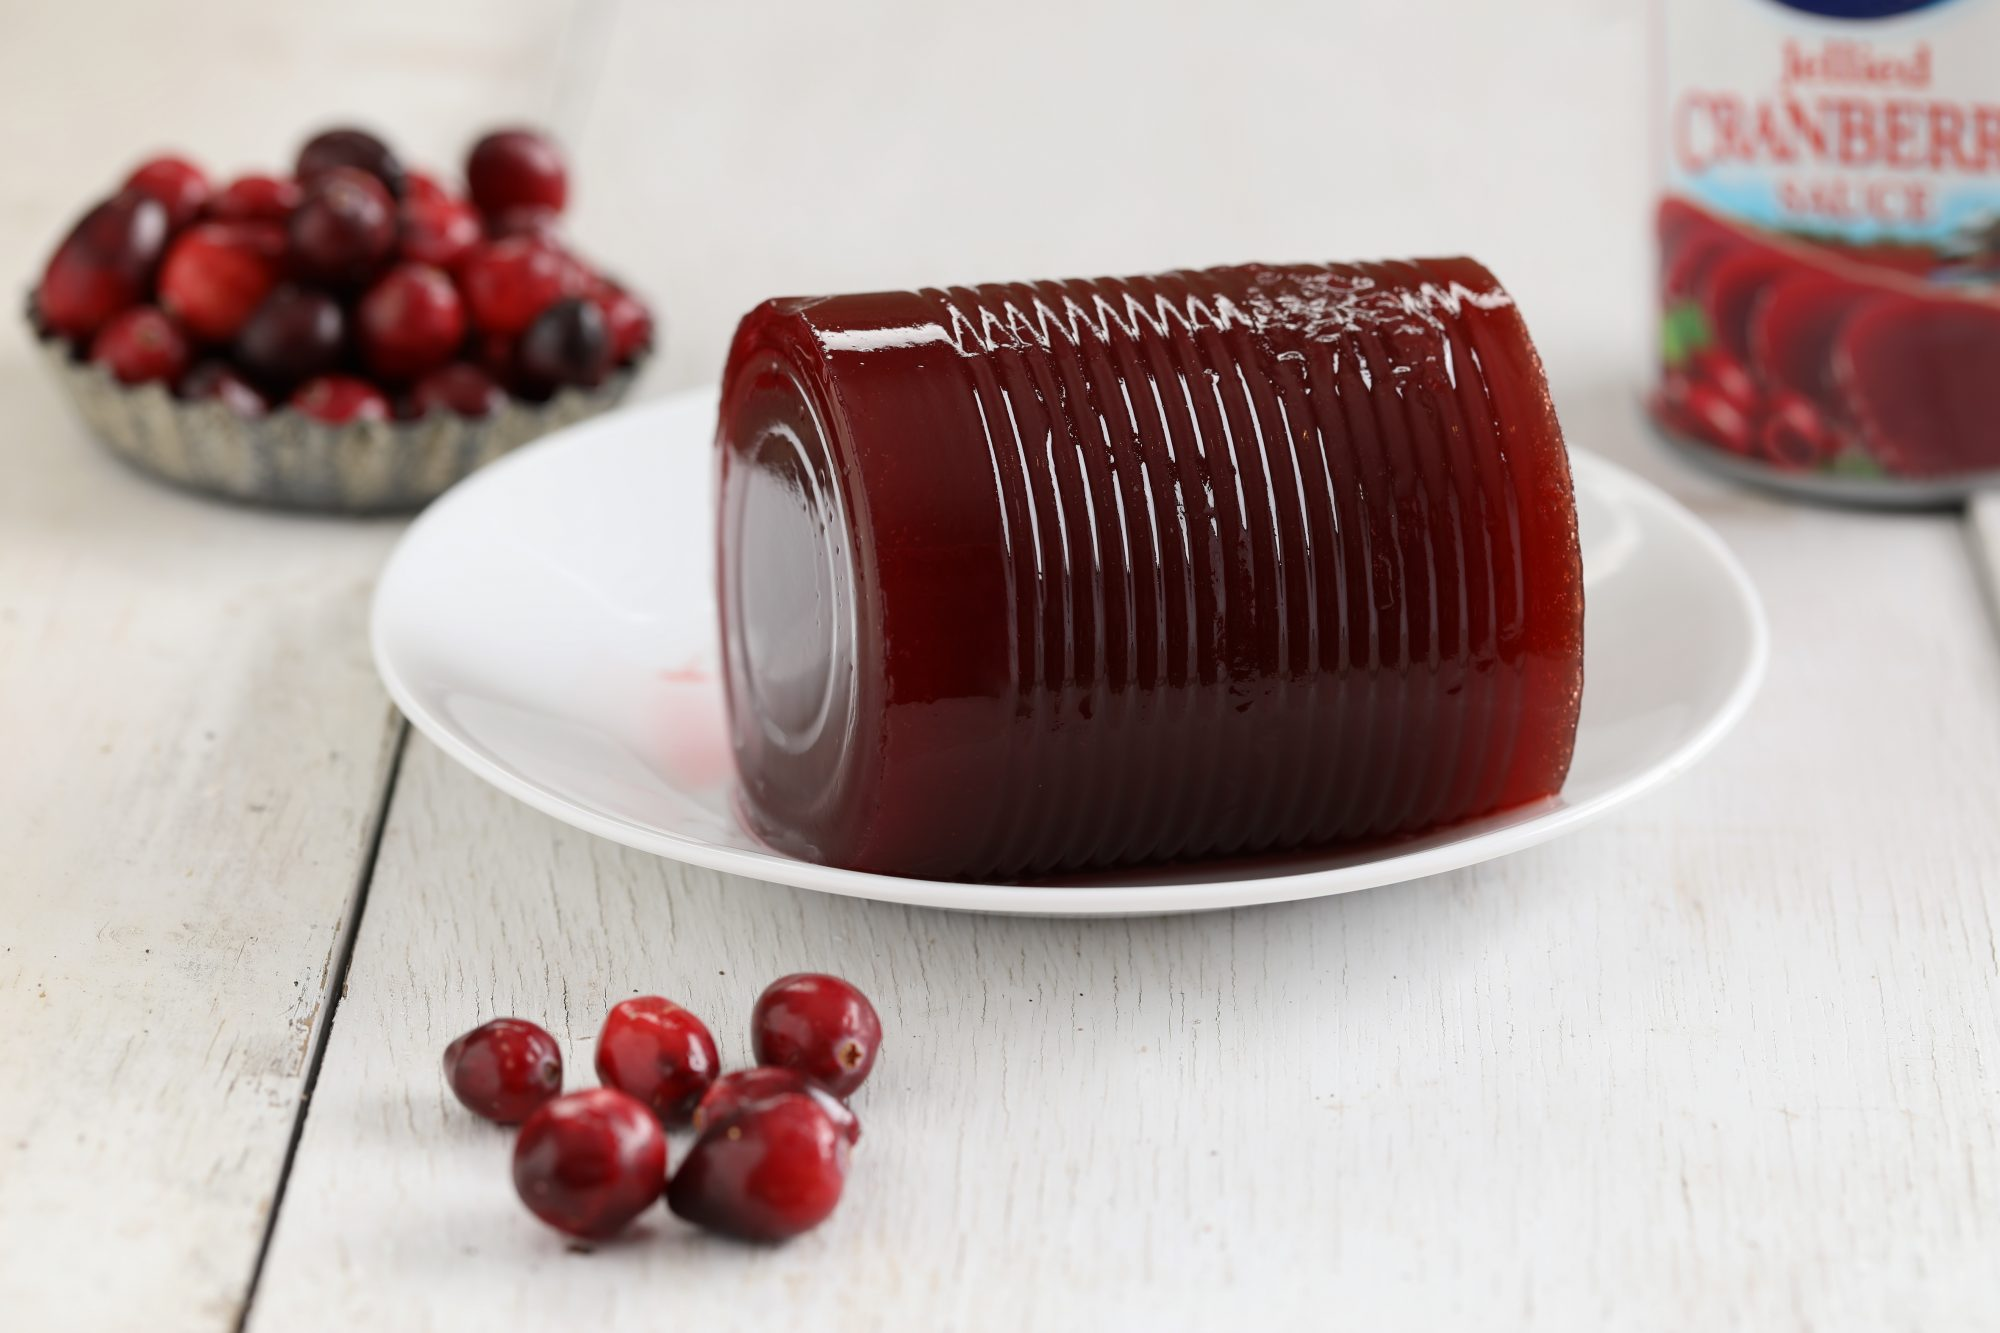 Canned Cranberry Sauce on Plate